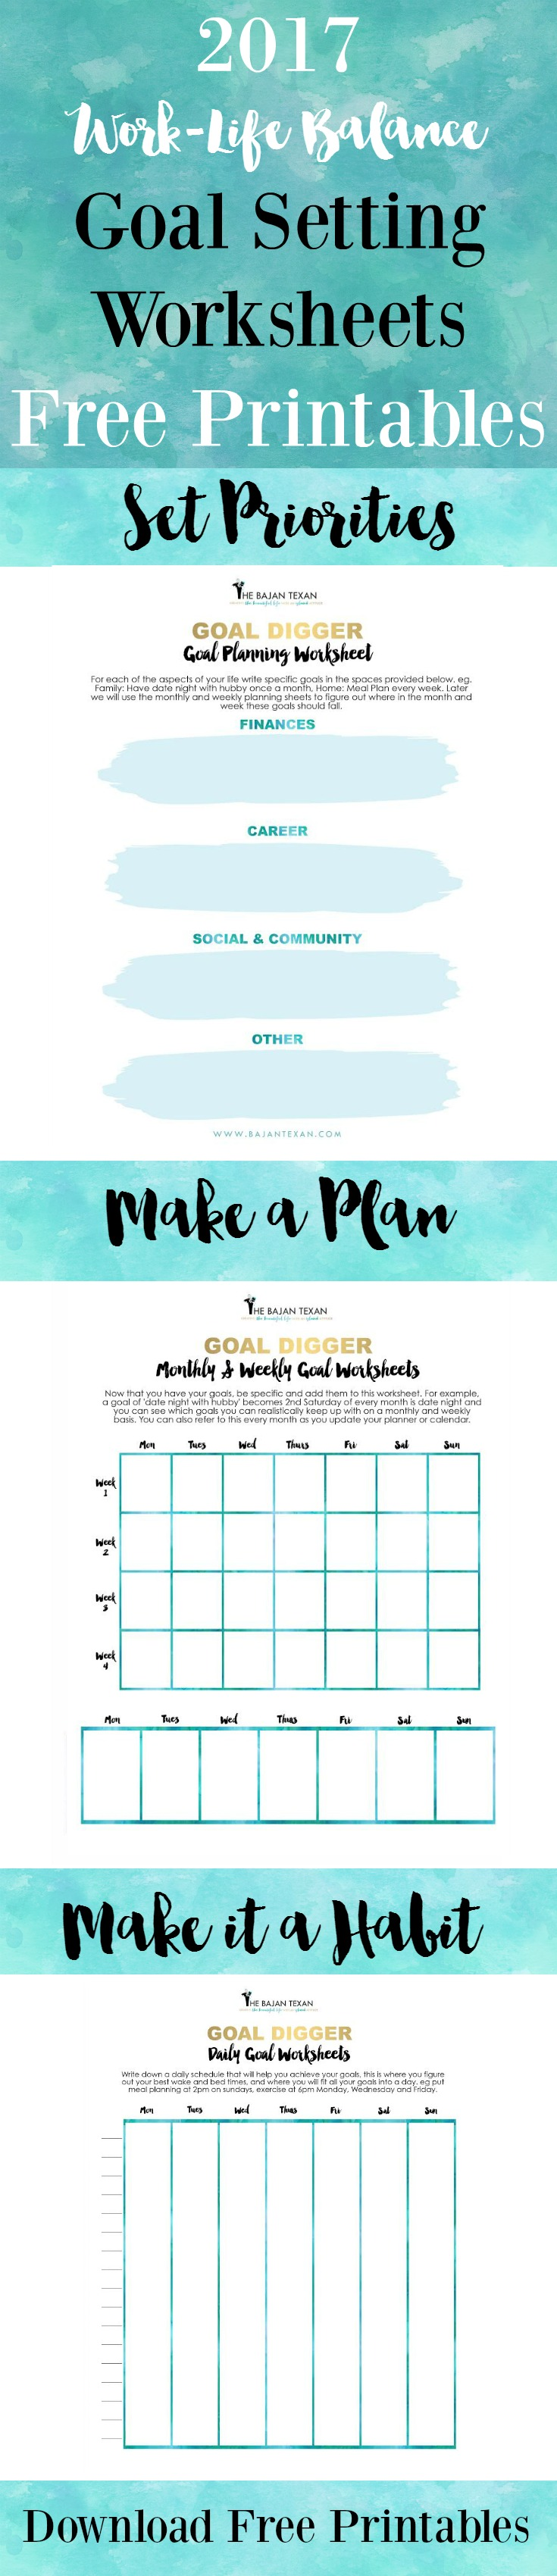 Free Goal Planning Worksheets for the New Year – The Bajan Texan